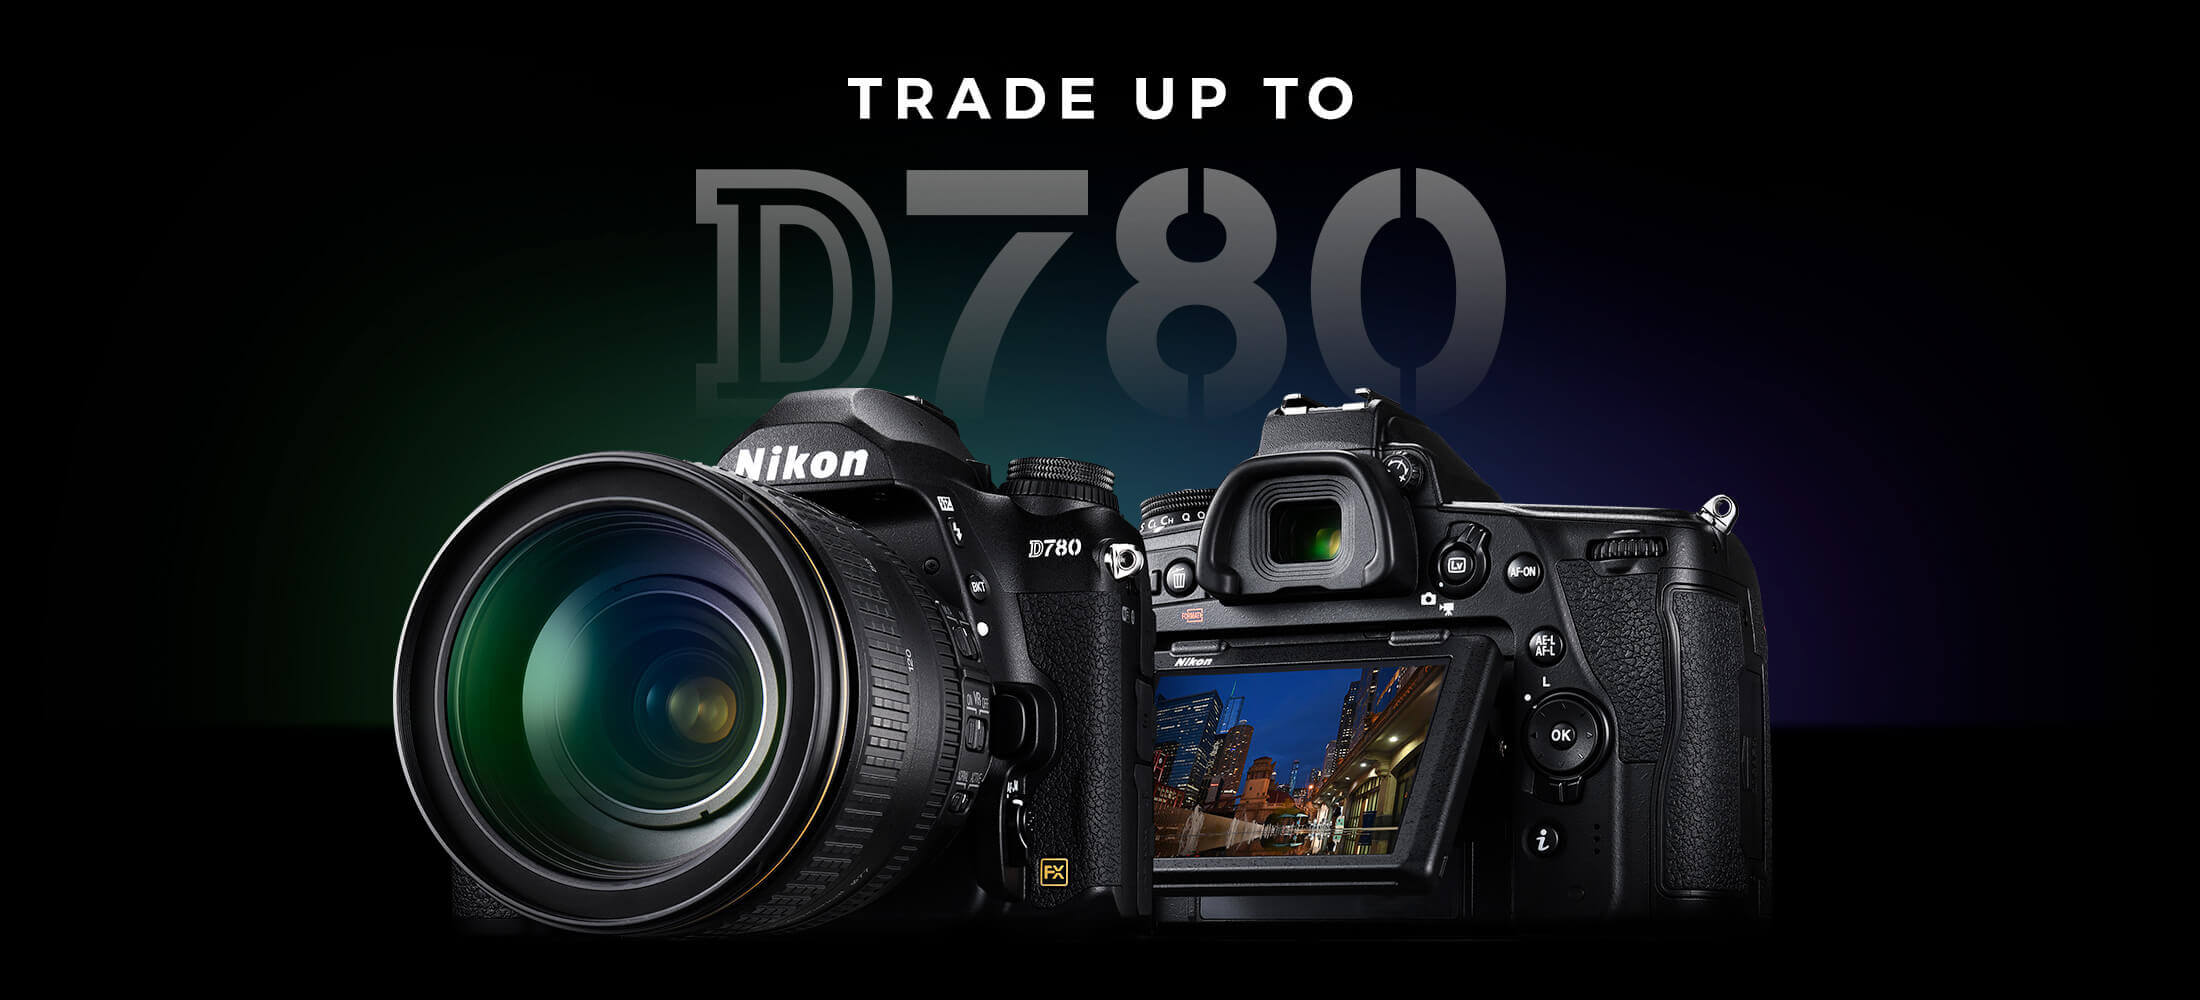 Trade up to D780